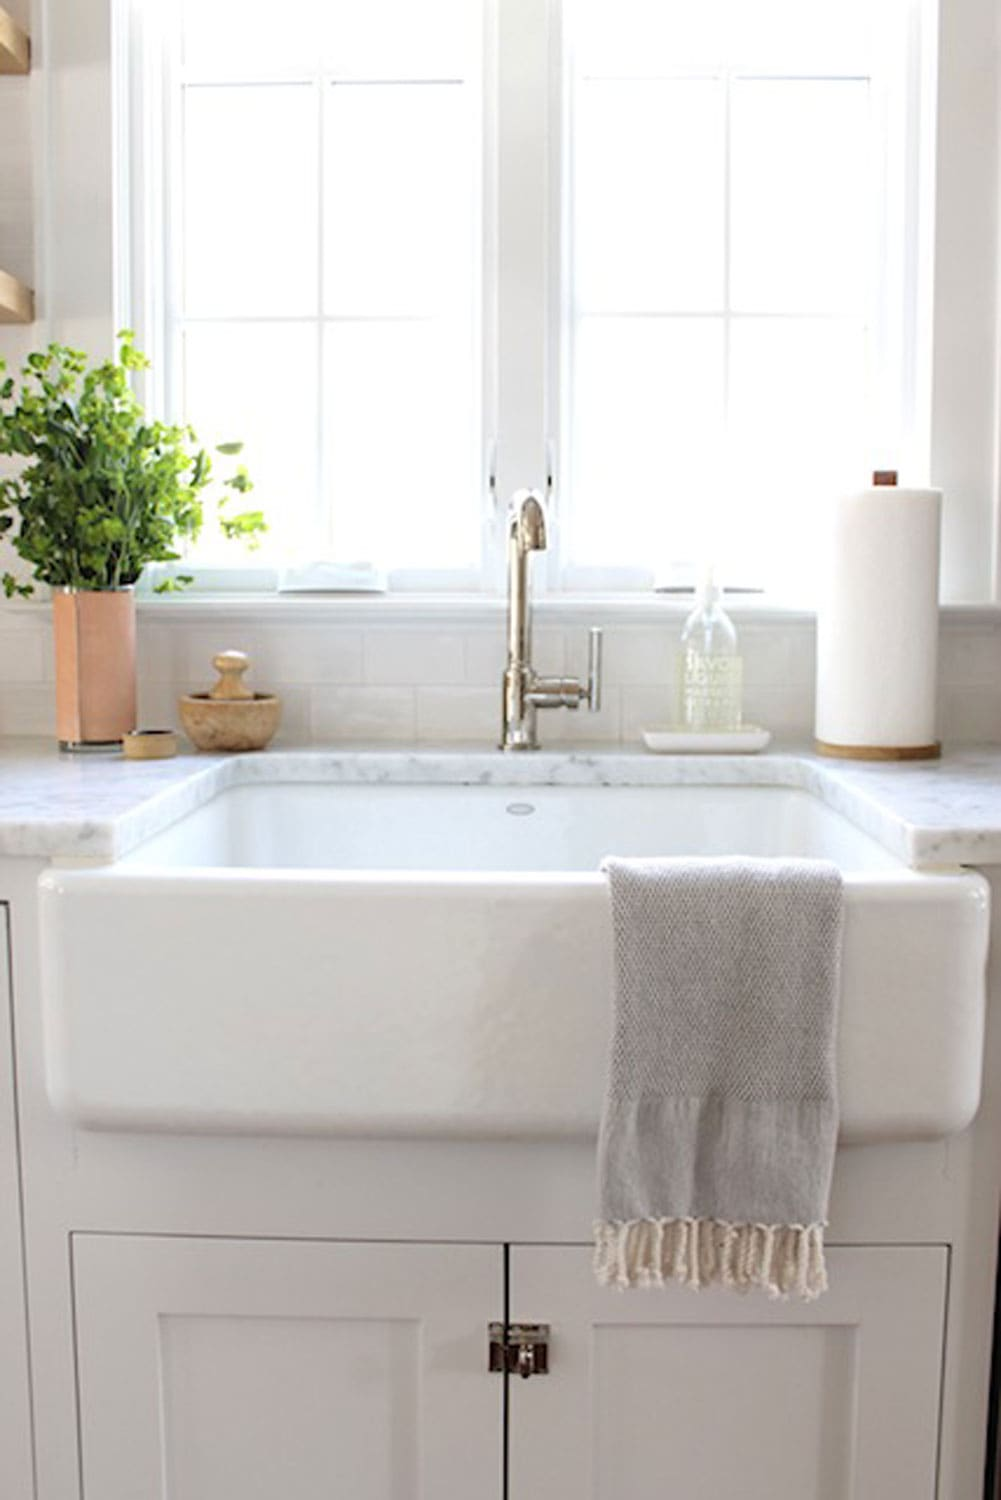 farm sink with leather vase with greens